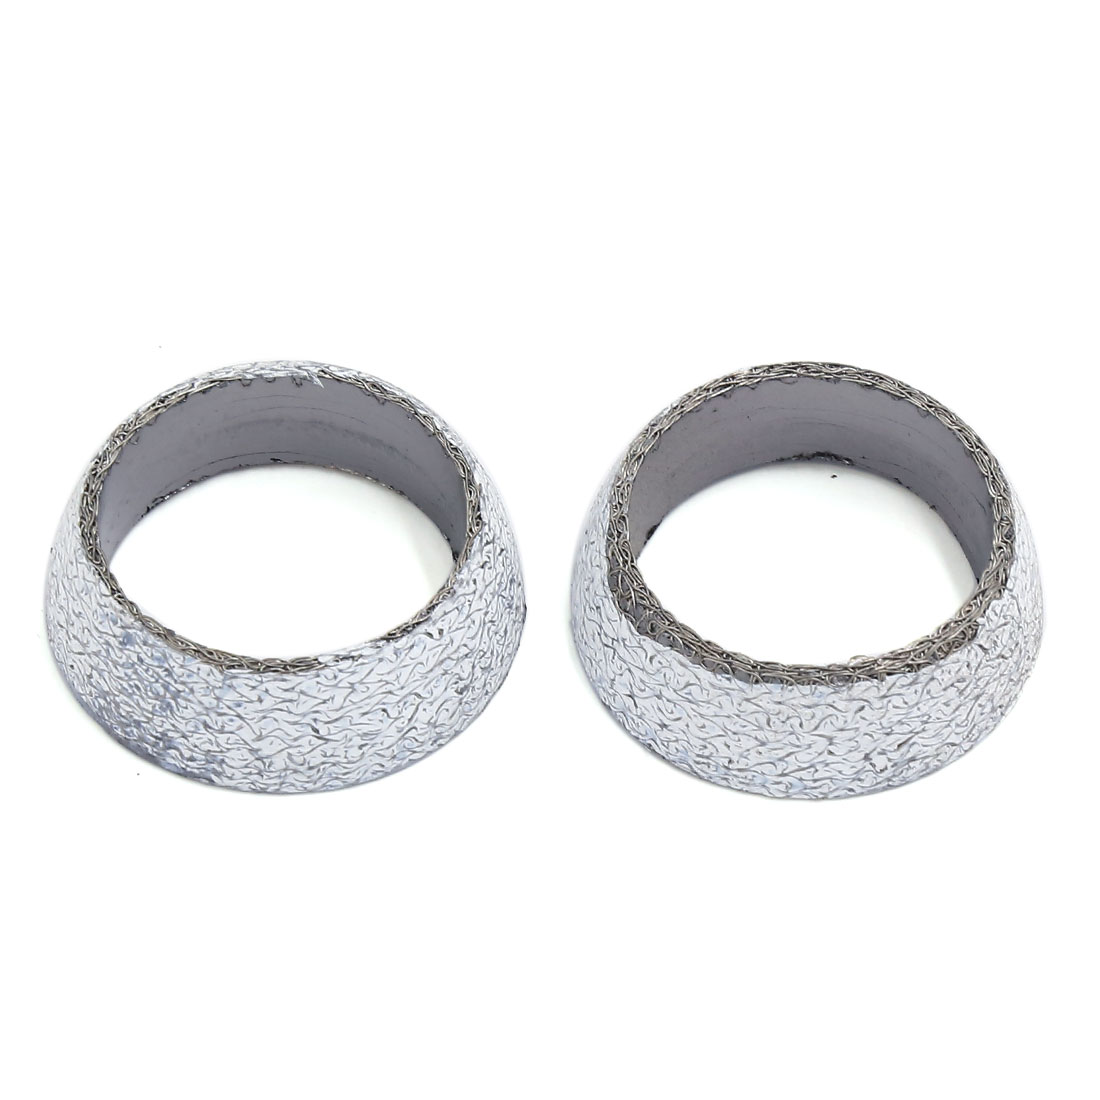 2 Pcs 35mm Dia Exhaust Tail Pipe Graphite Donut Gasket Muffler Seal Ring for Car